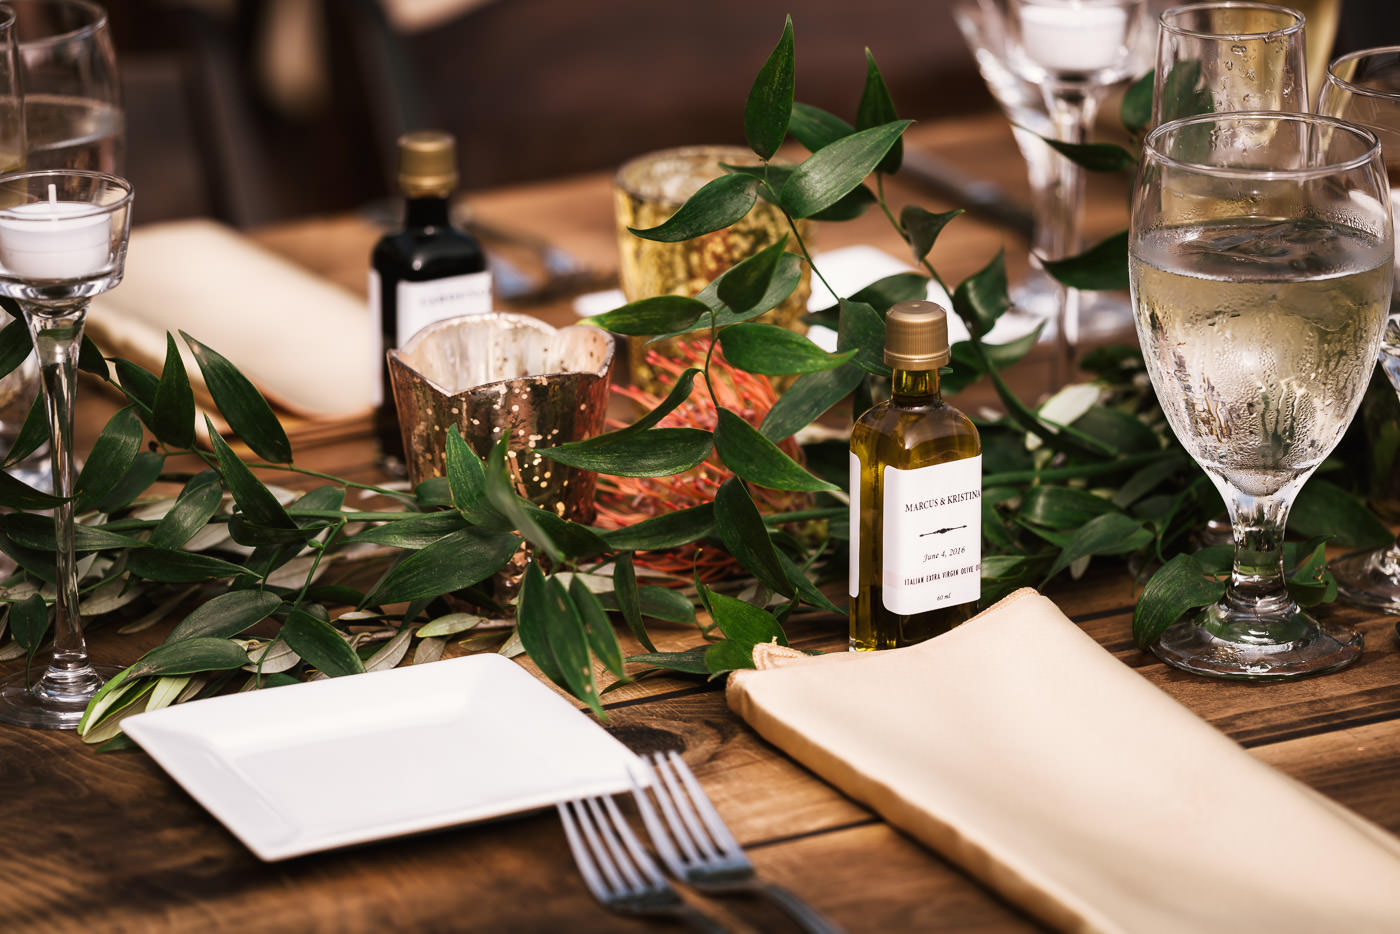 Olive oil and Balsamic Vinegar wedding favors for guests.